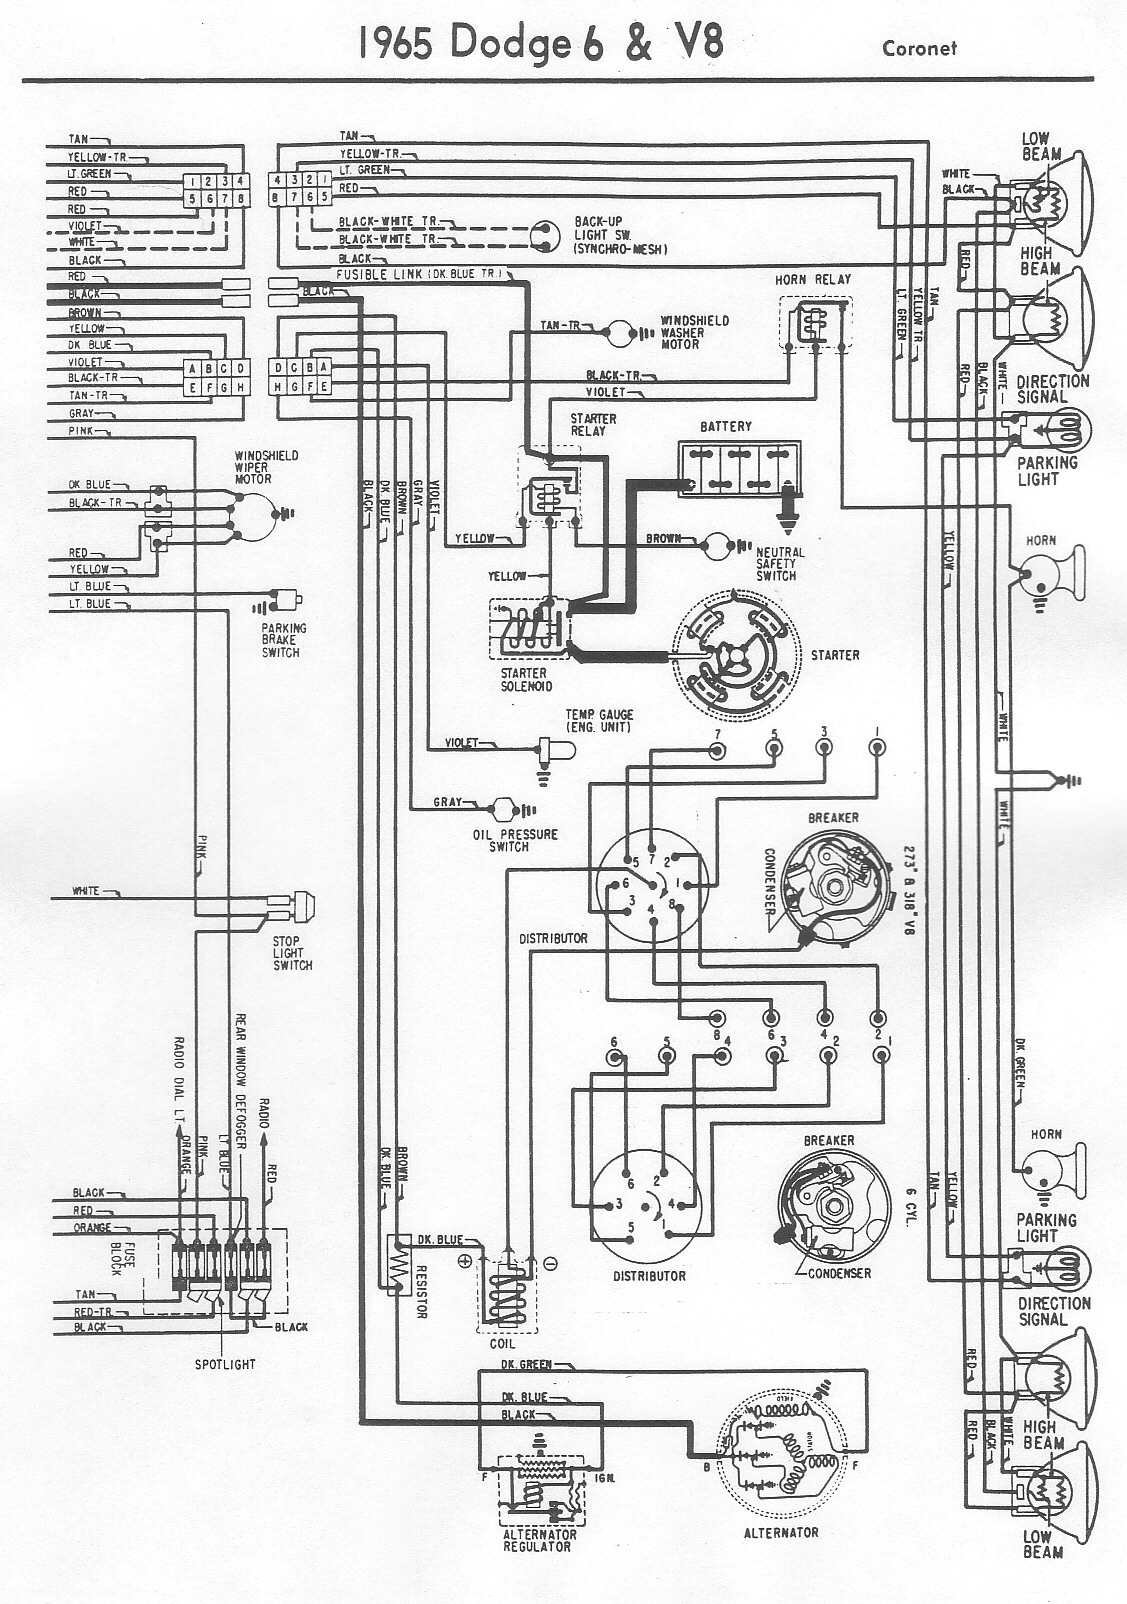 wiring diagrams besides dodge 318 firing order on 1970 dodge coronet 68 coronet wiring diagram wiring [ 1127 x 1604 Pixel ]